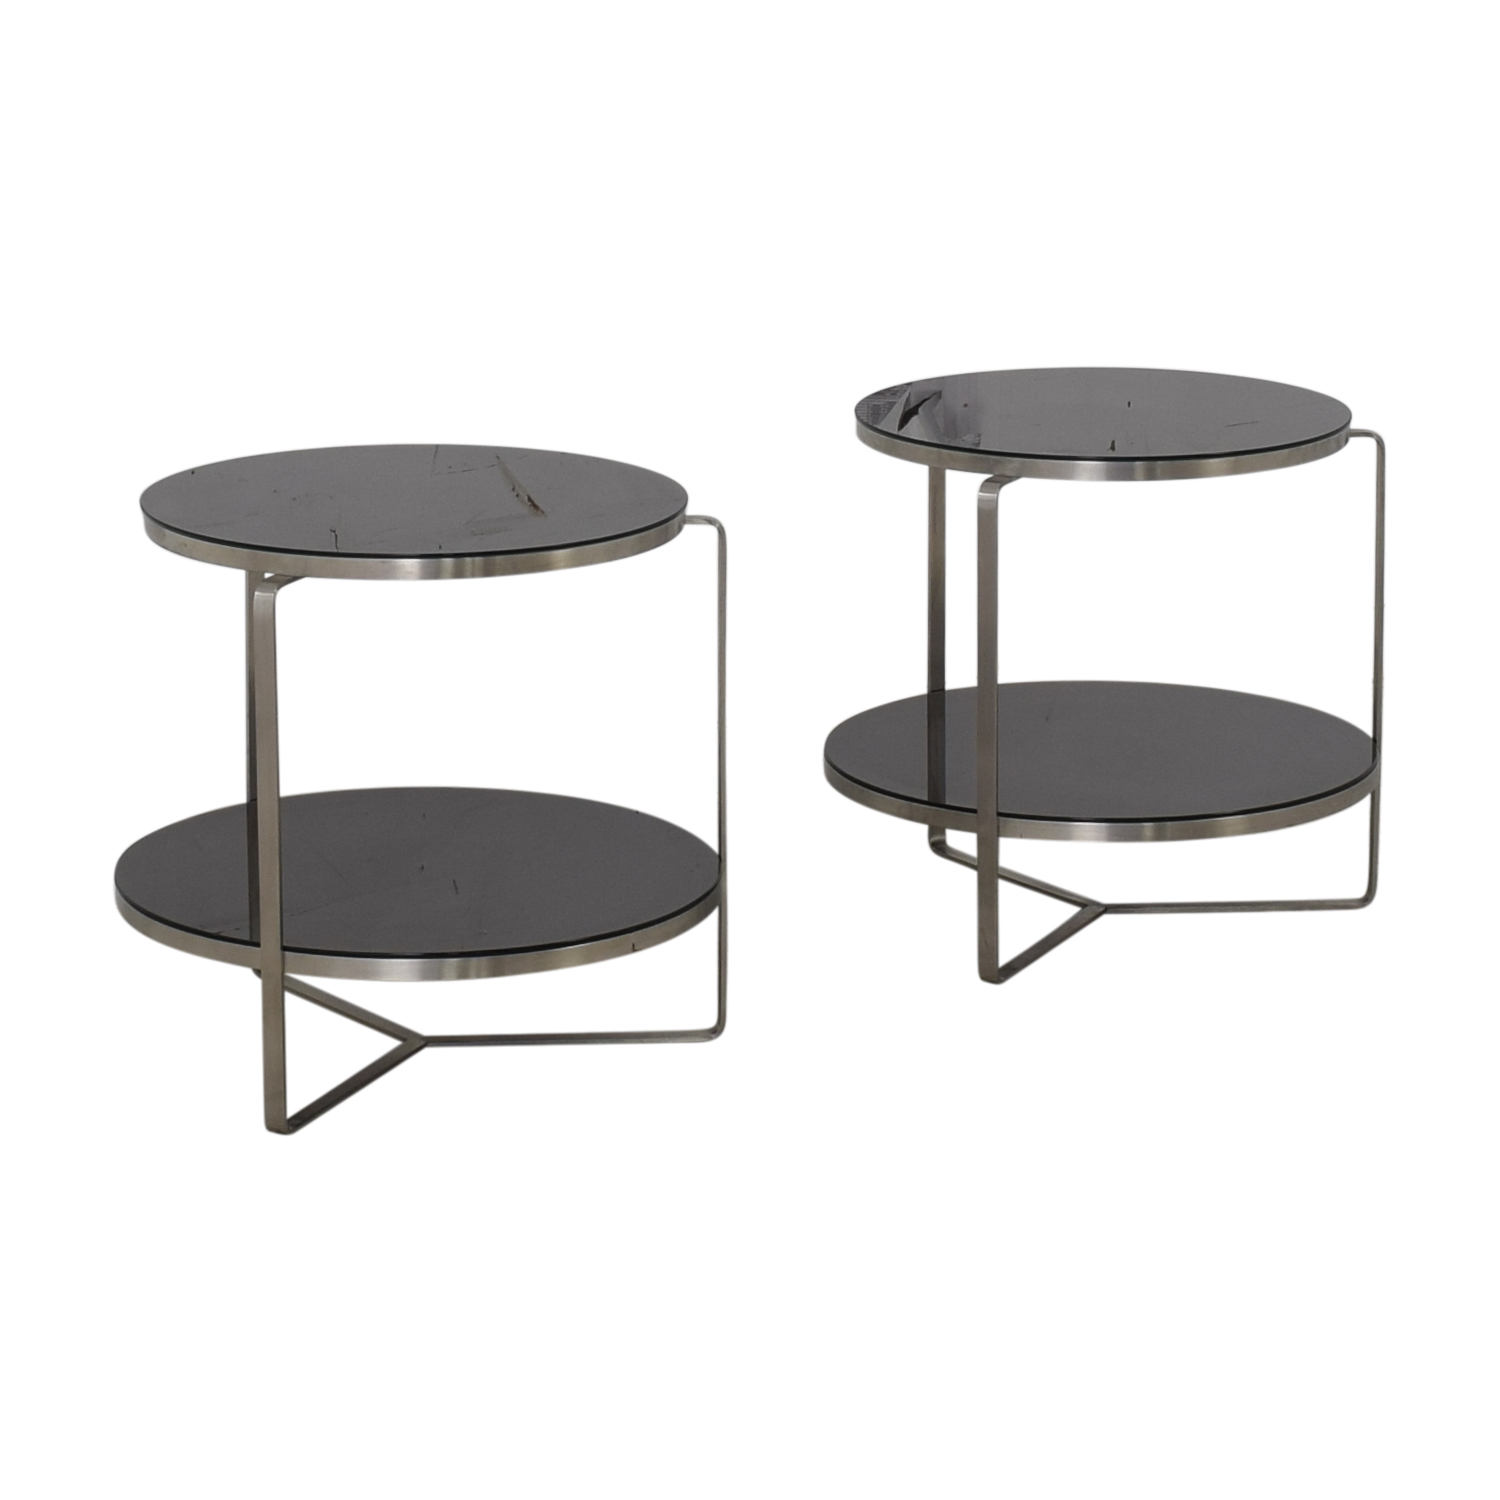 Tui Lifestyle Tui Lifestyle Black Two Tier Glass Side Tables used